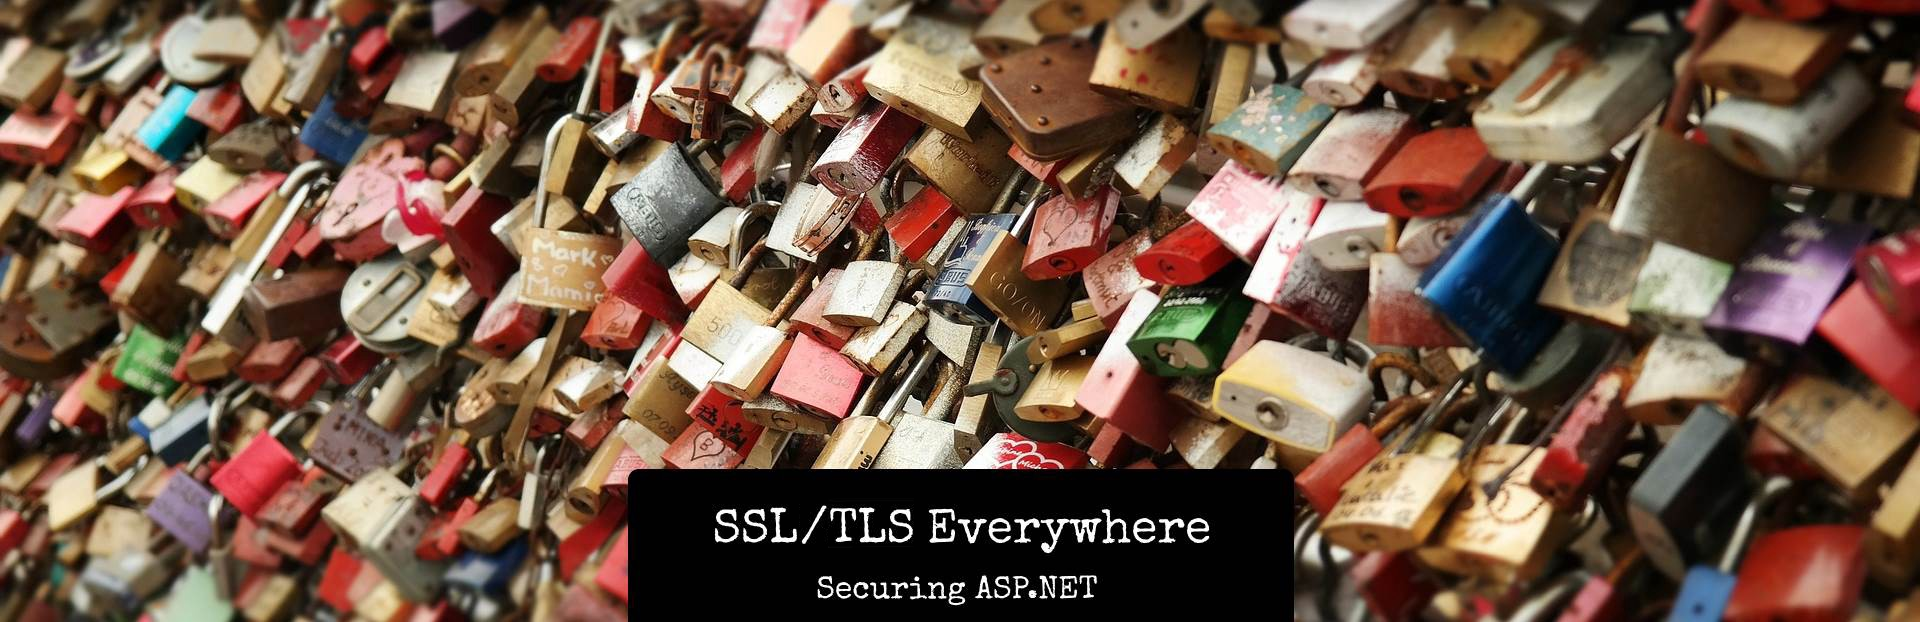 Securing ASP NET with free SSL/TLS certificates - headmelted